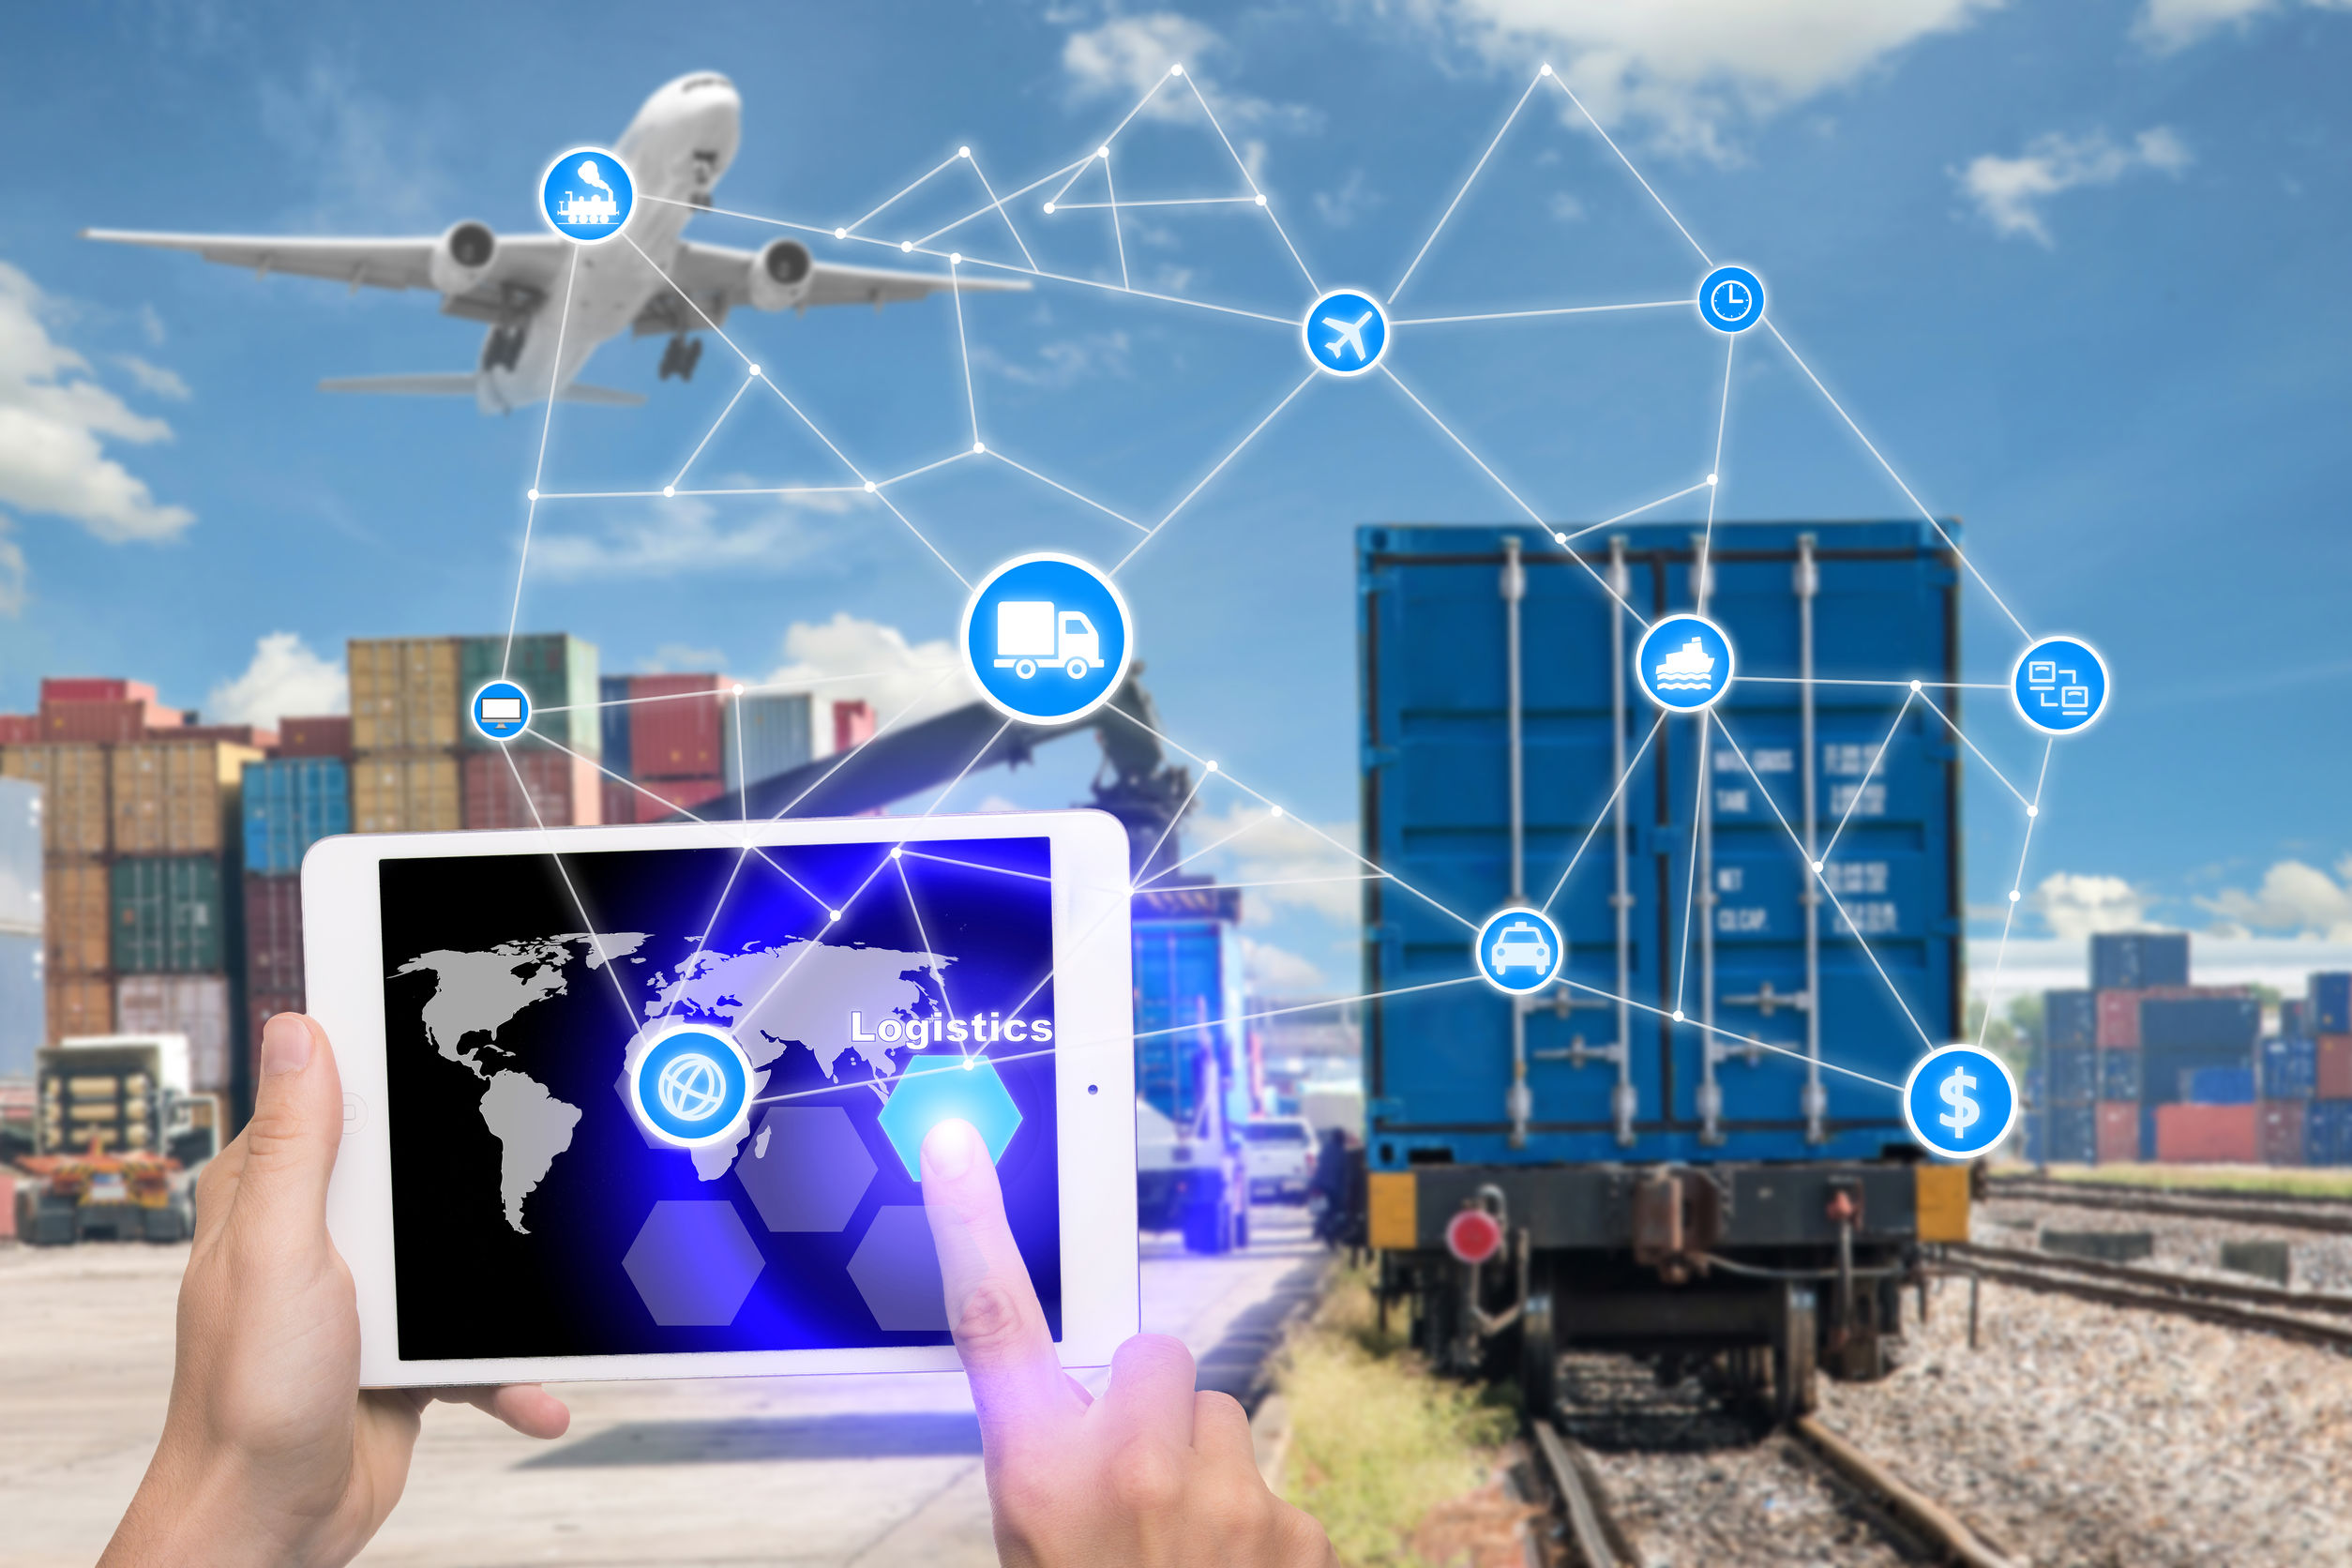 Software and systems for logistics